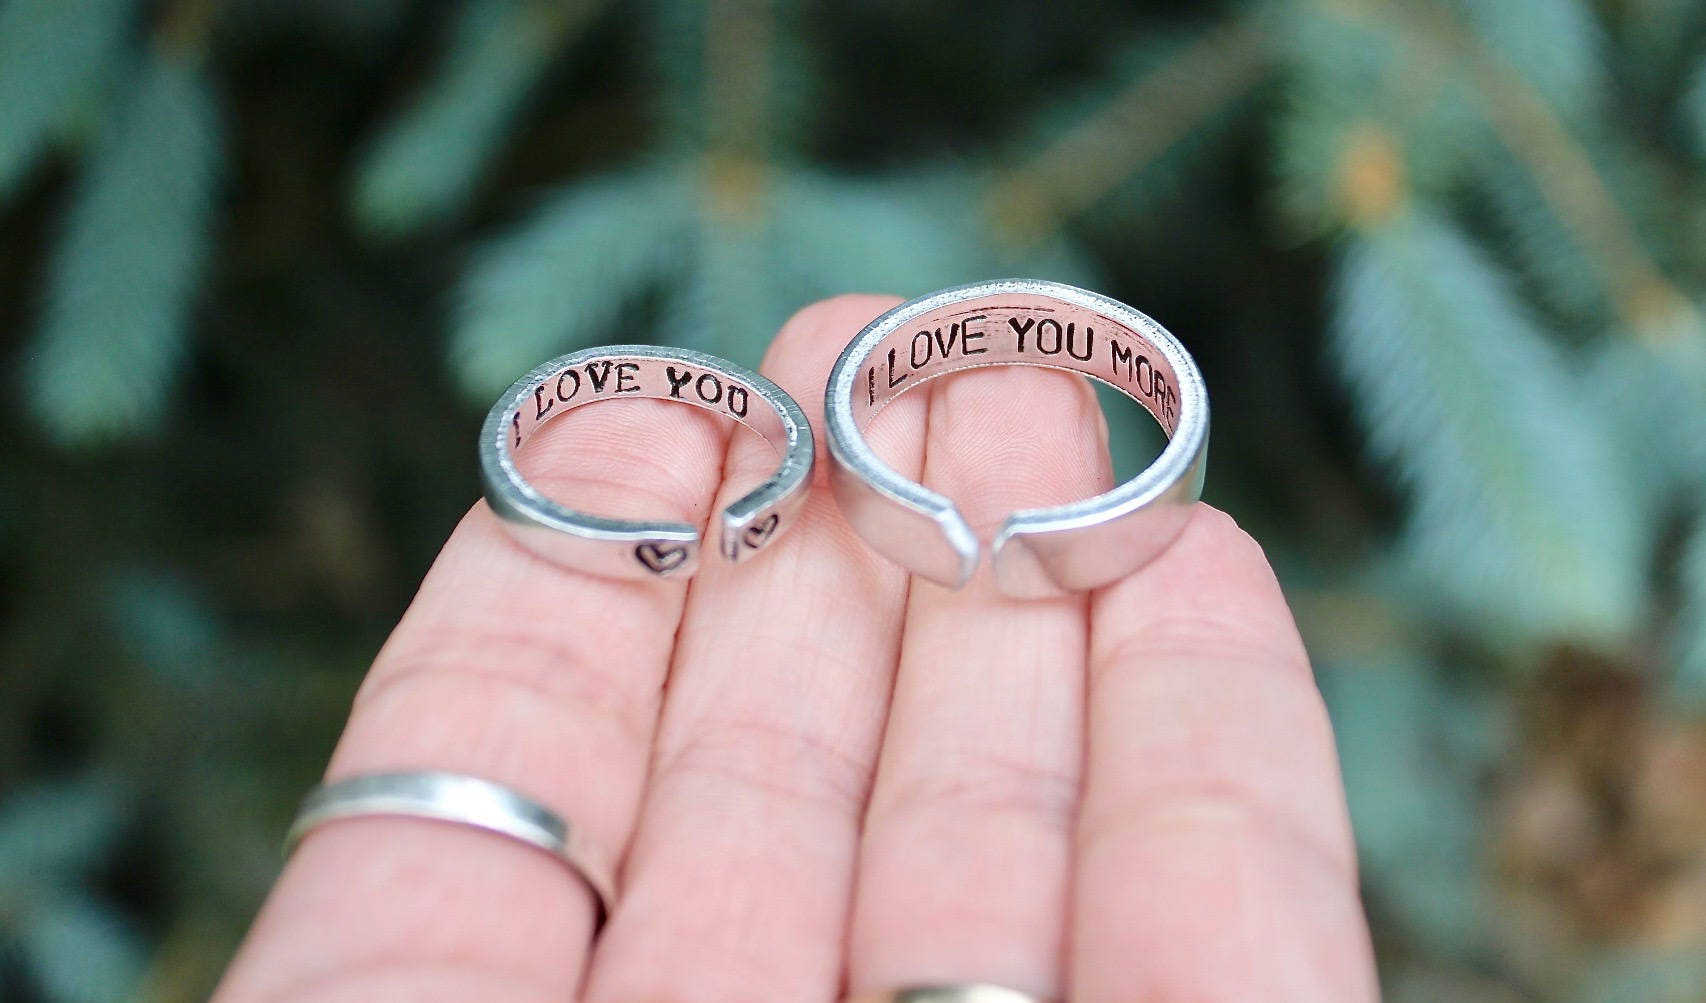 Couple Rings Rings for Boyfriend and Girlfriend I love you